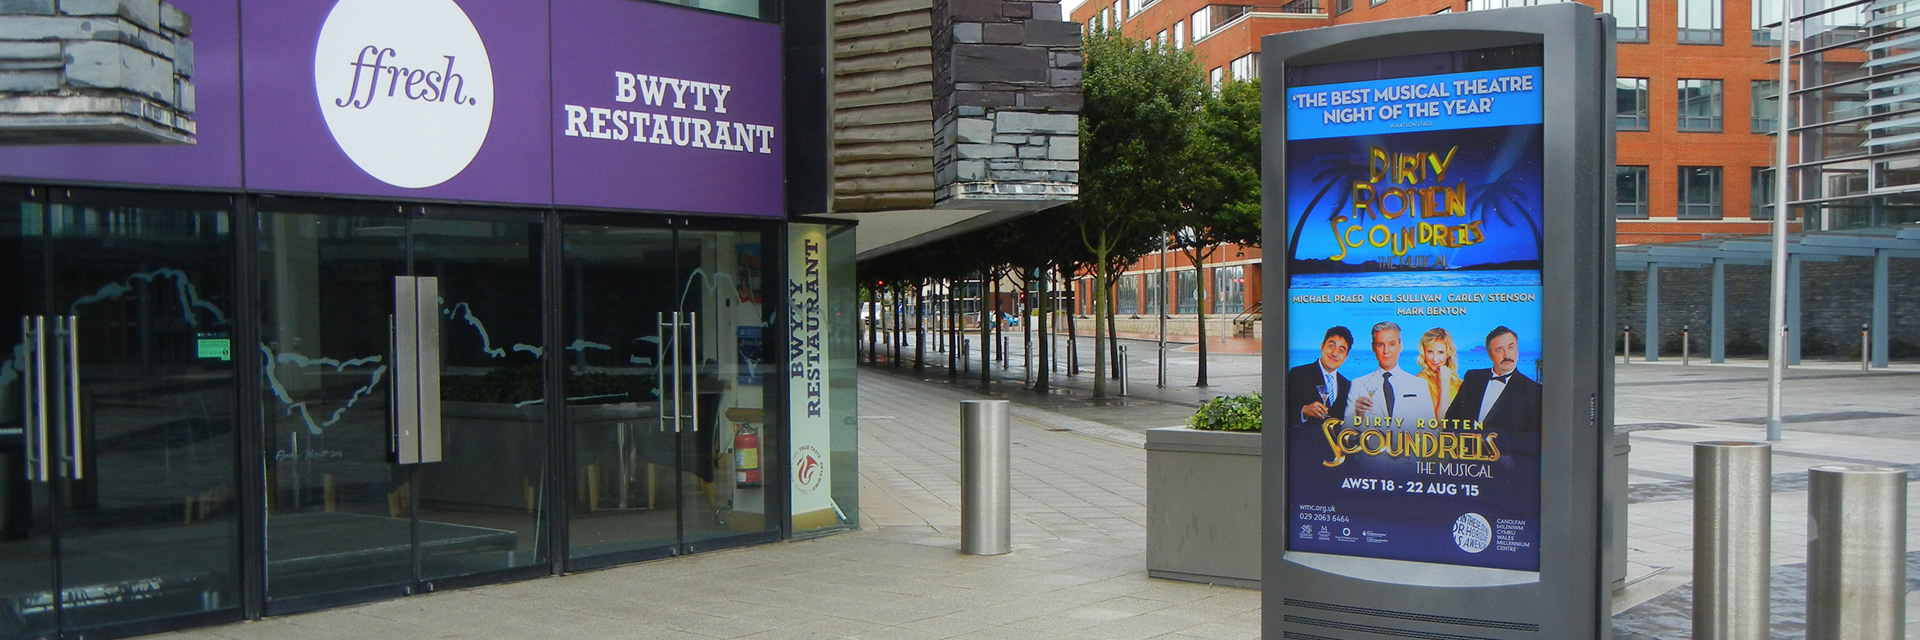 Digital Advertising Screens at Wales Millennium Centre Cardiff